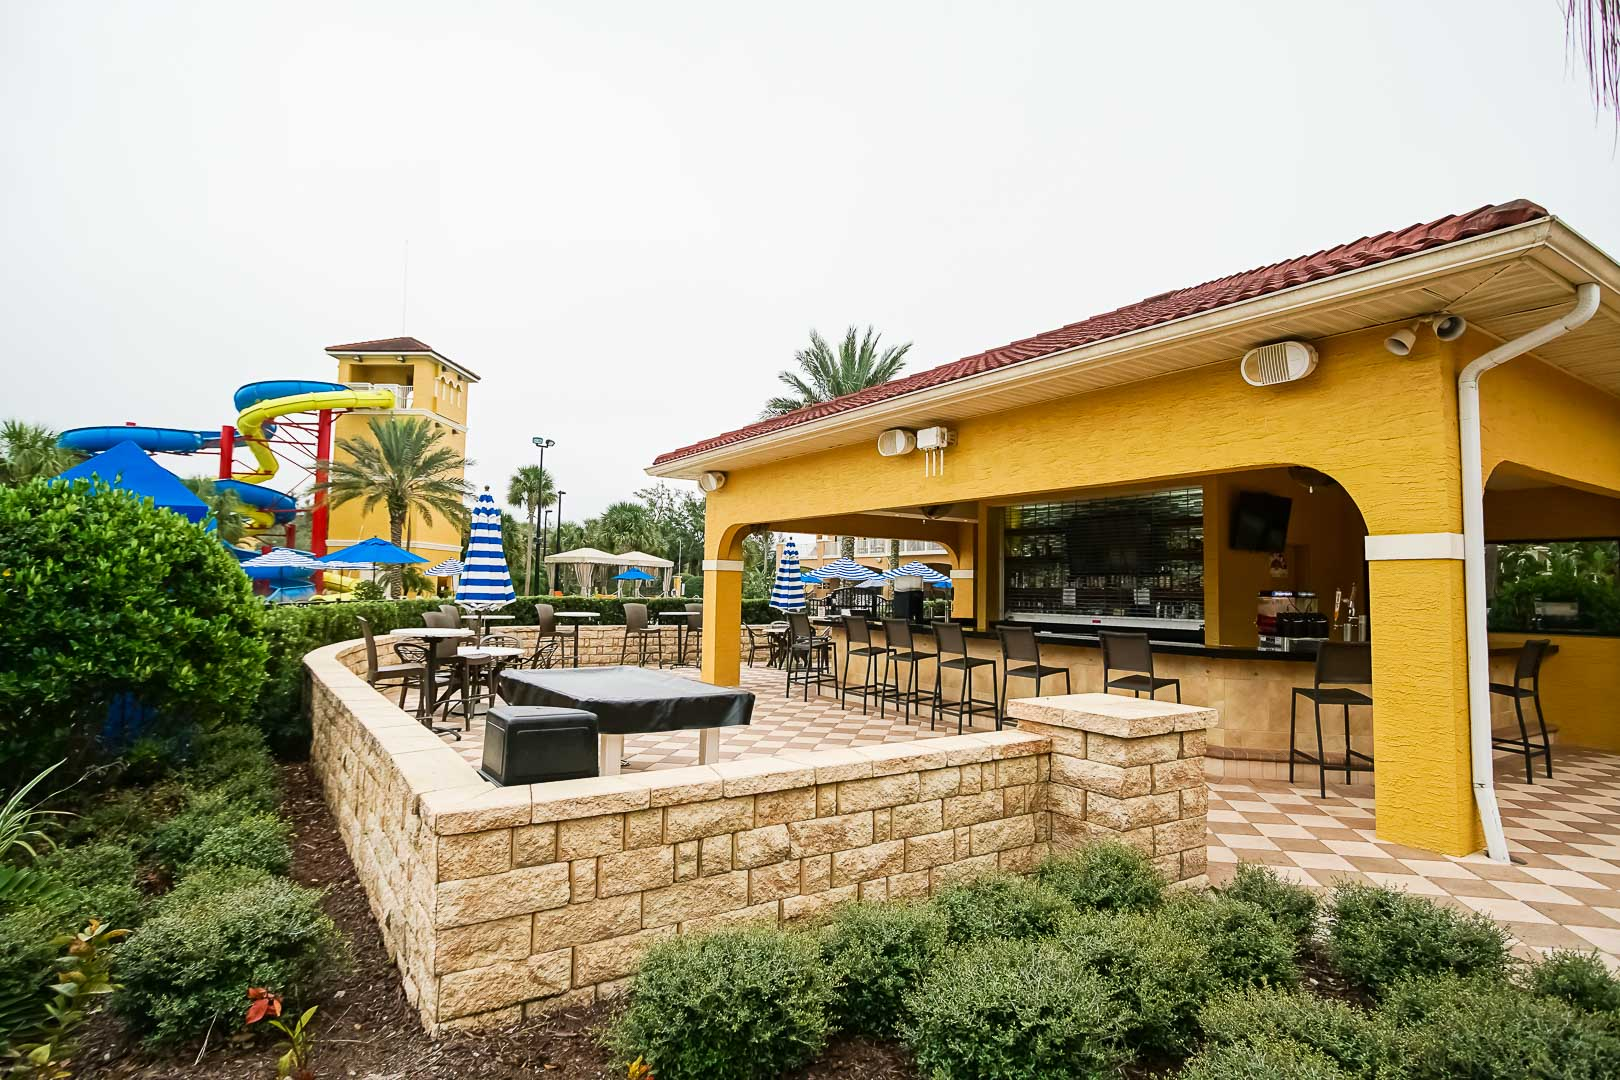 A quaint outdoor bar lounging area at VRI's Fantasy World Resort in Florida.